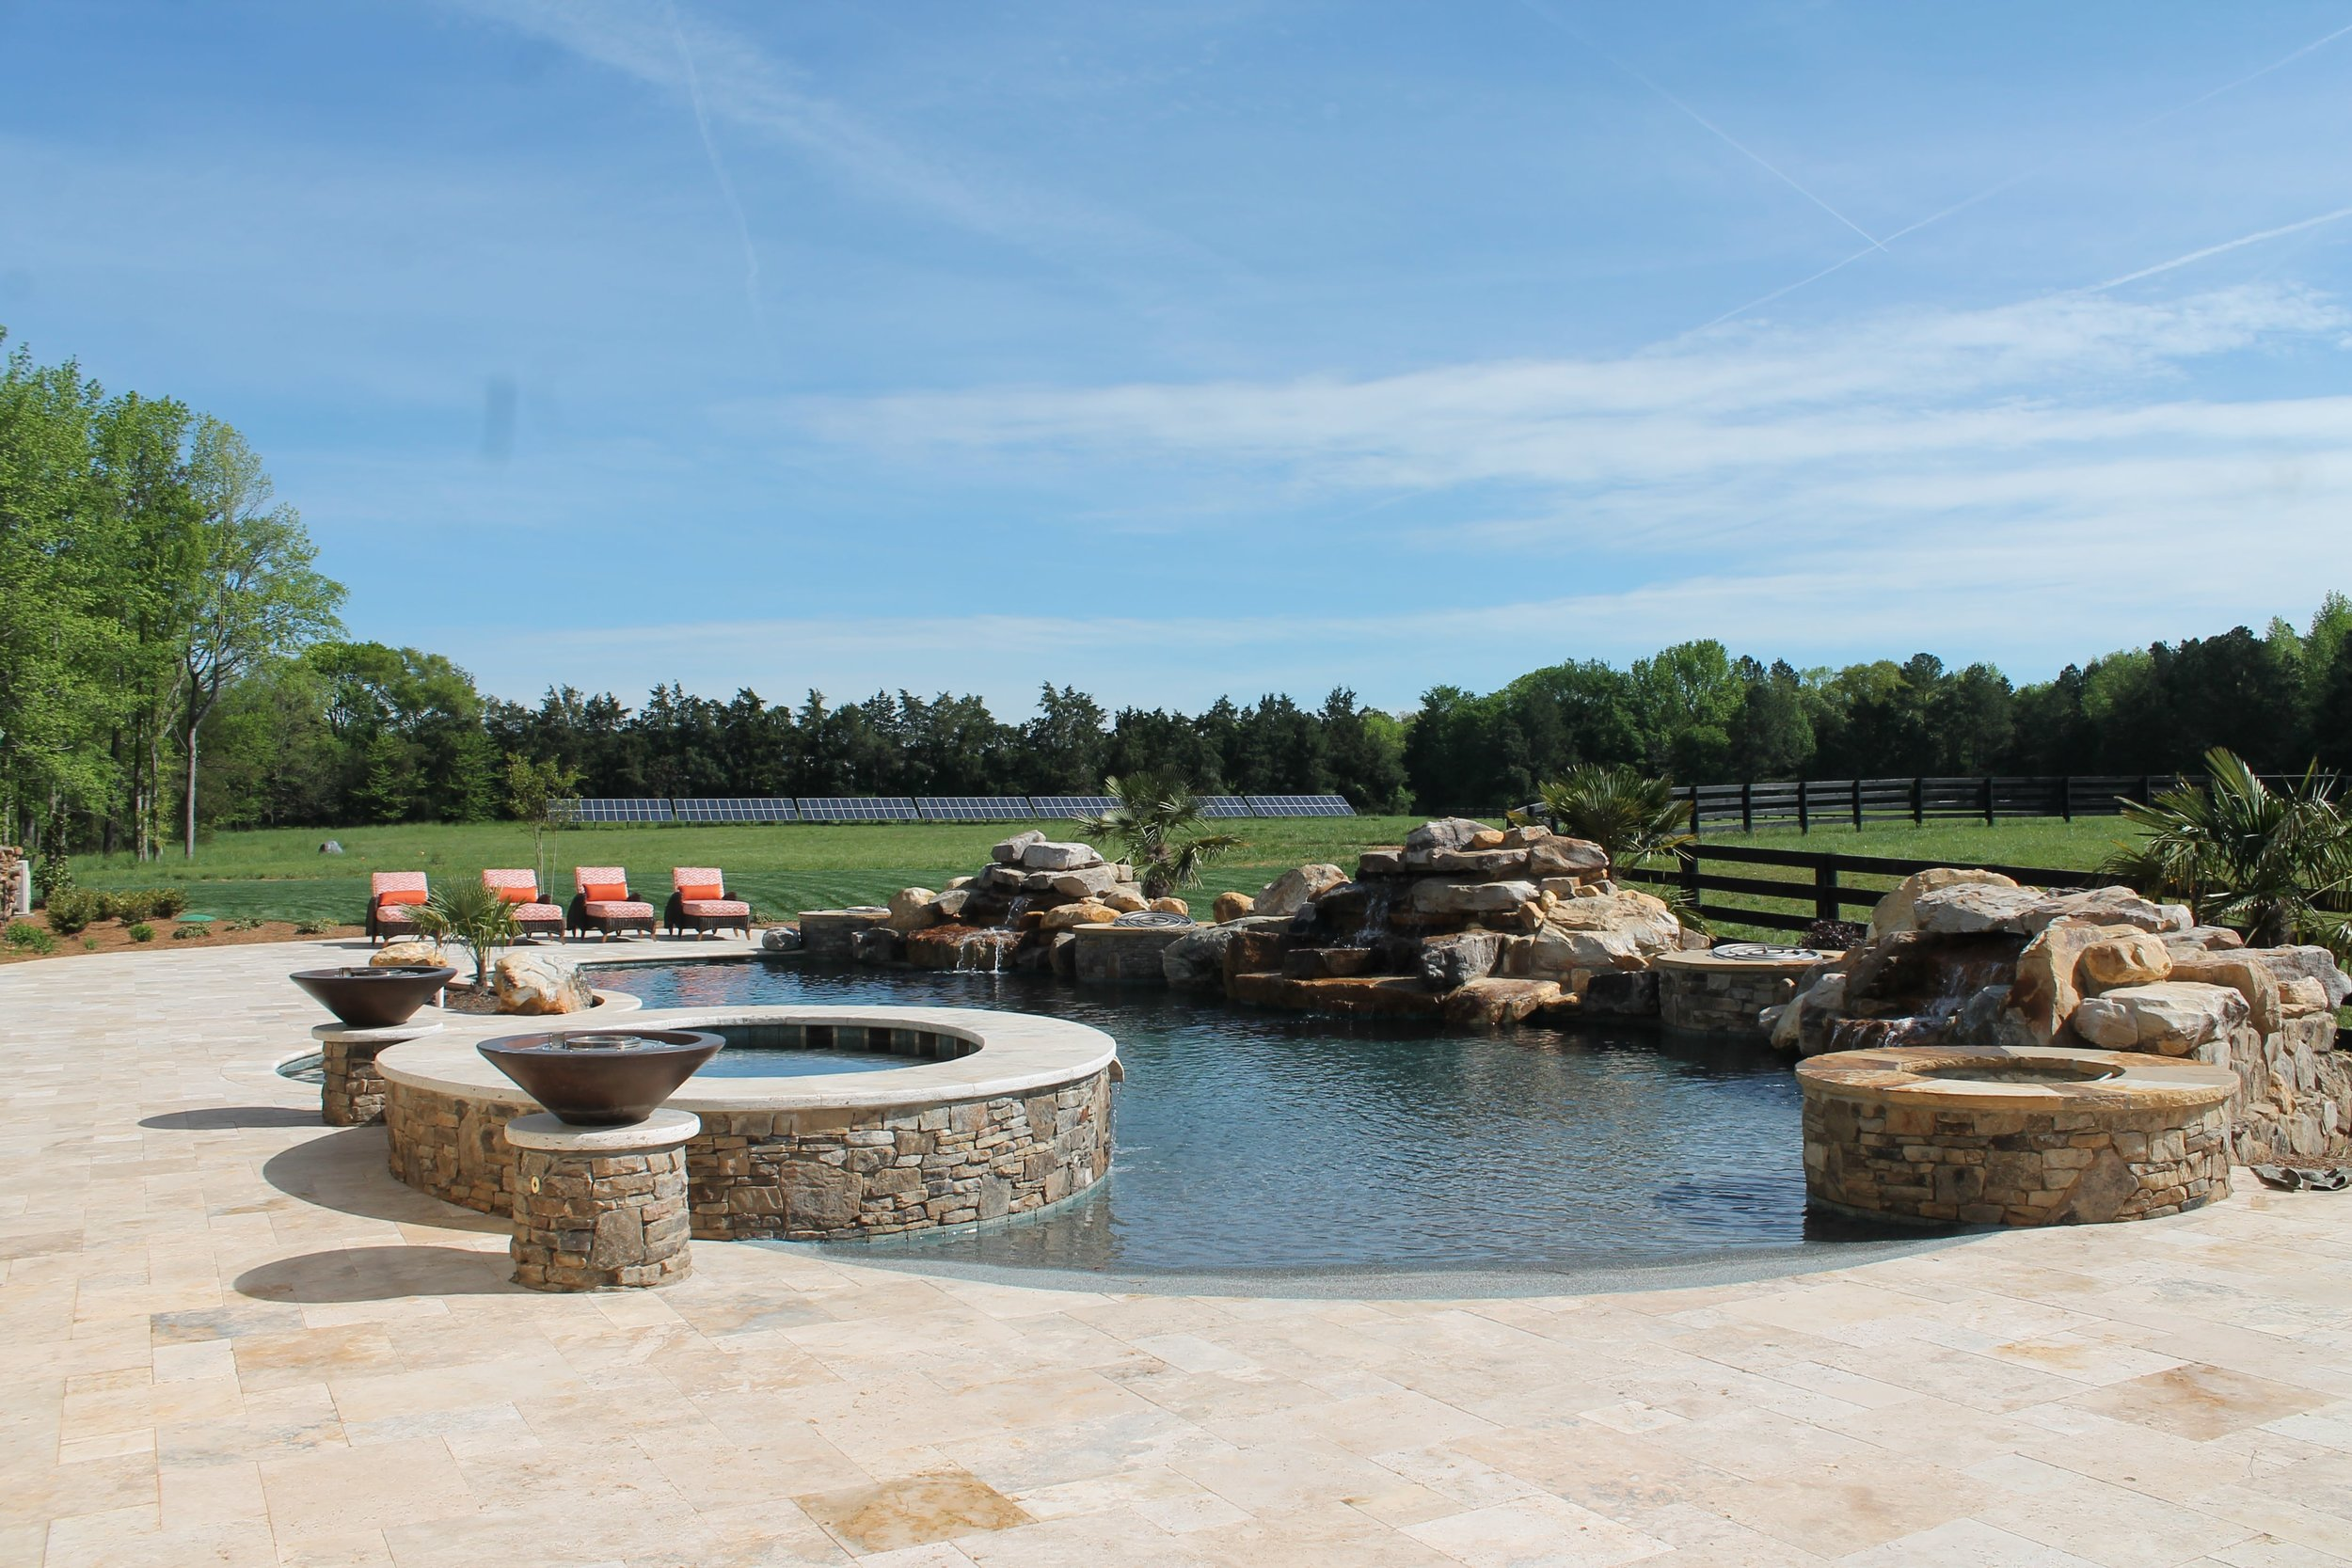 Amazingly huge salt water pool with natural stone and boulders.  Large hot tub and multiple water falls and fire bowls enhance the relaxing feel.  Notice the solar panels in the back ground that power most of the home.